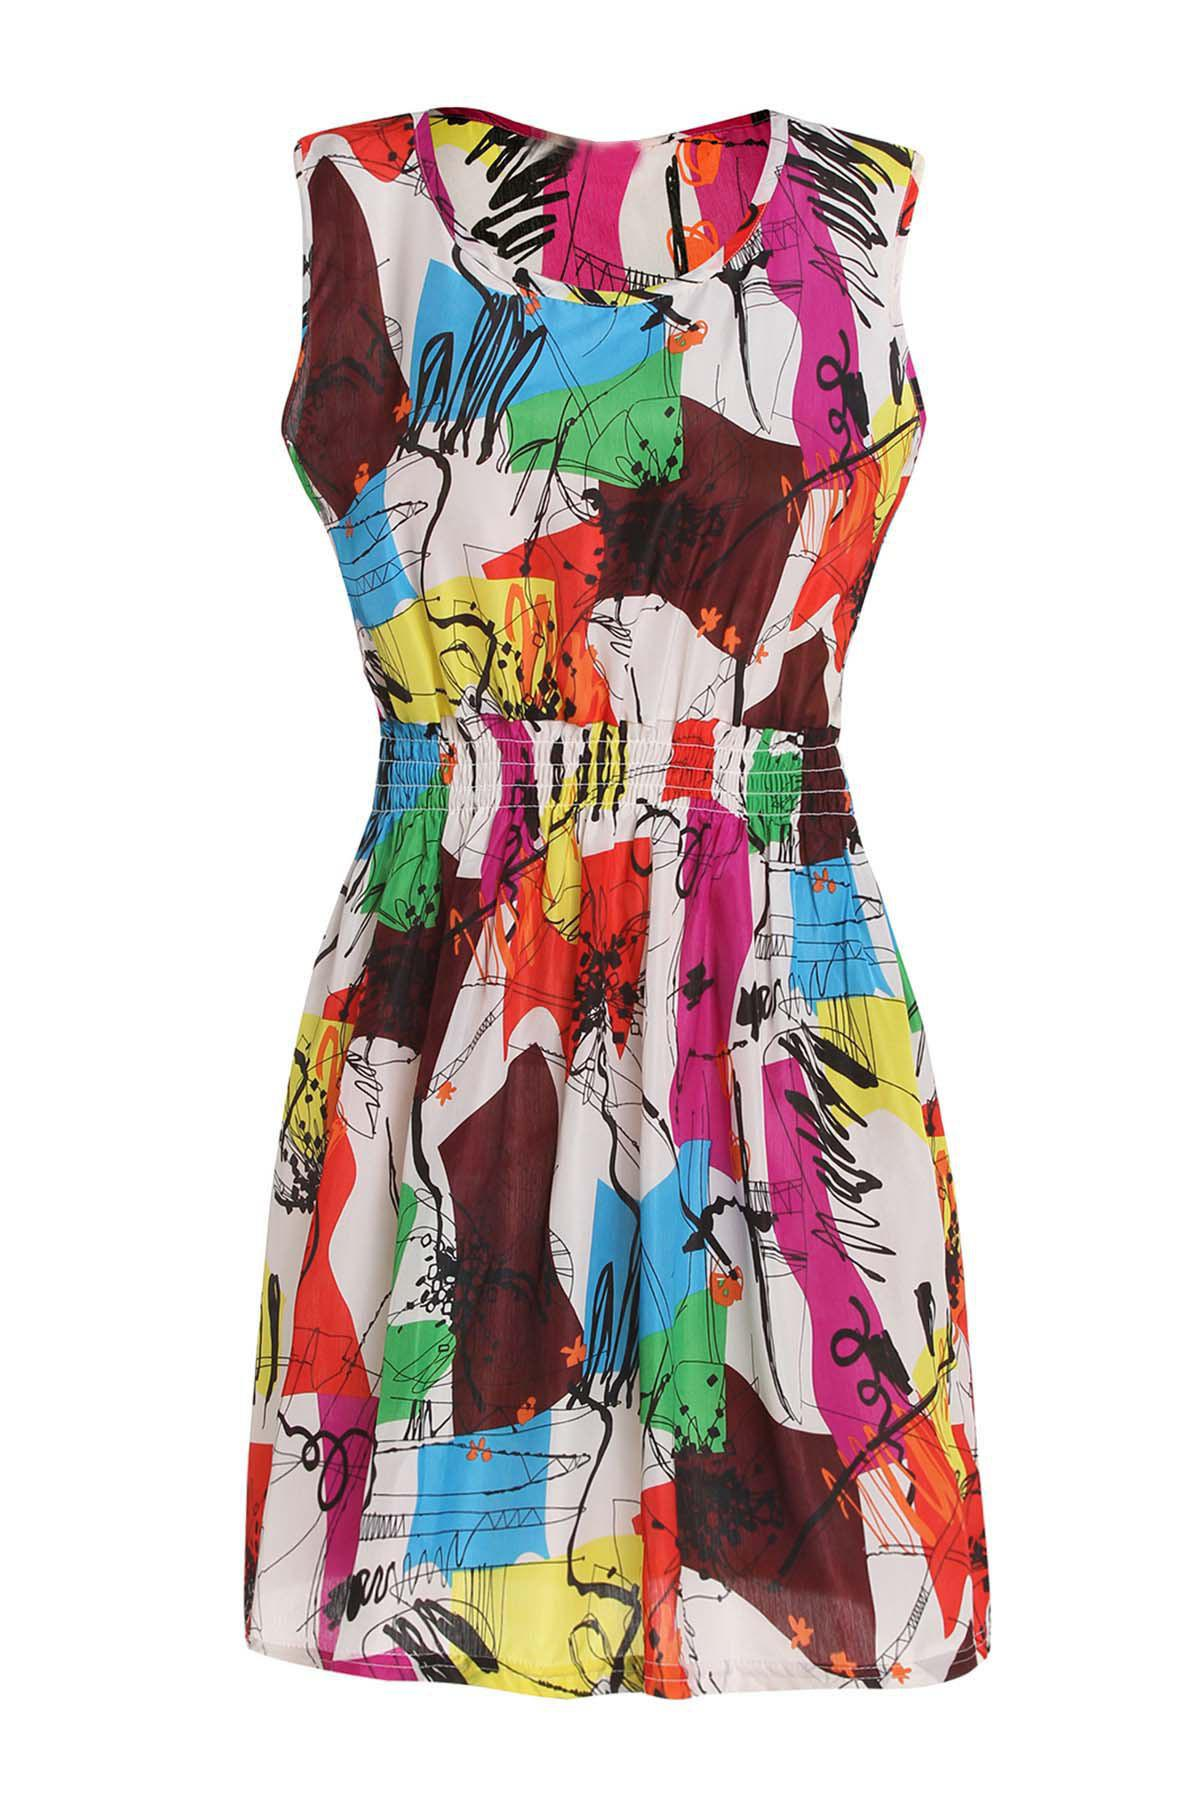 Casual Sleeveless Scoop Collar Elastic Waist Printed Chiffon Women's Dress - COLORMIX S